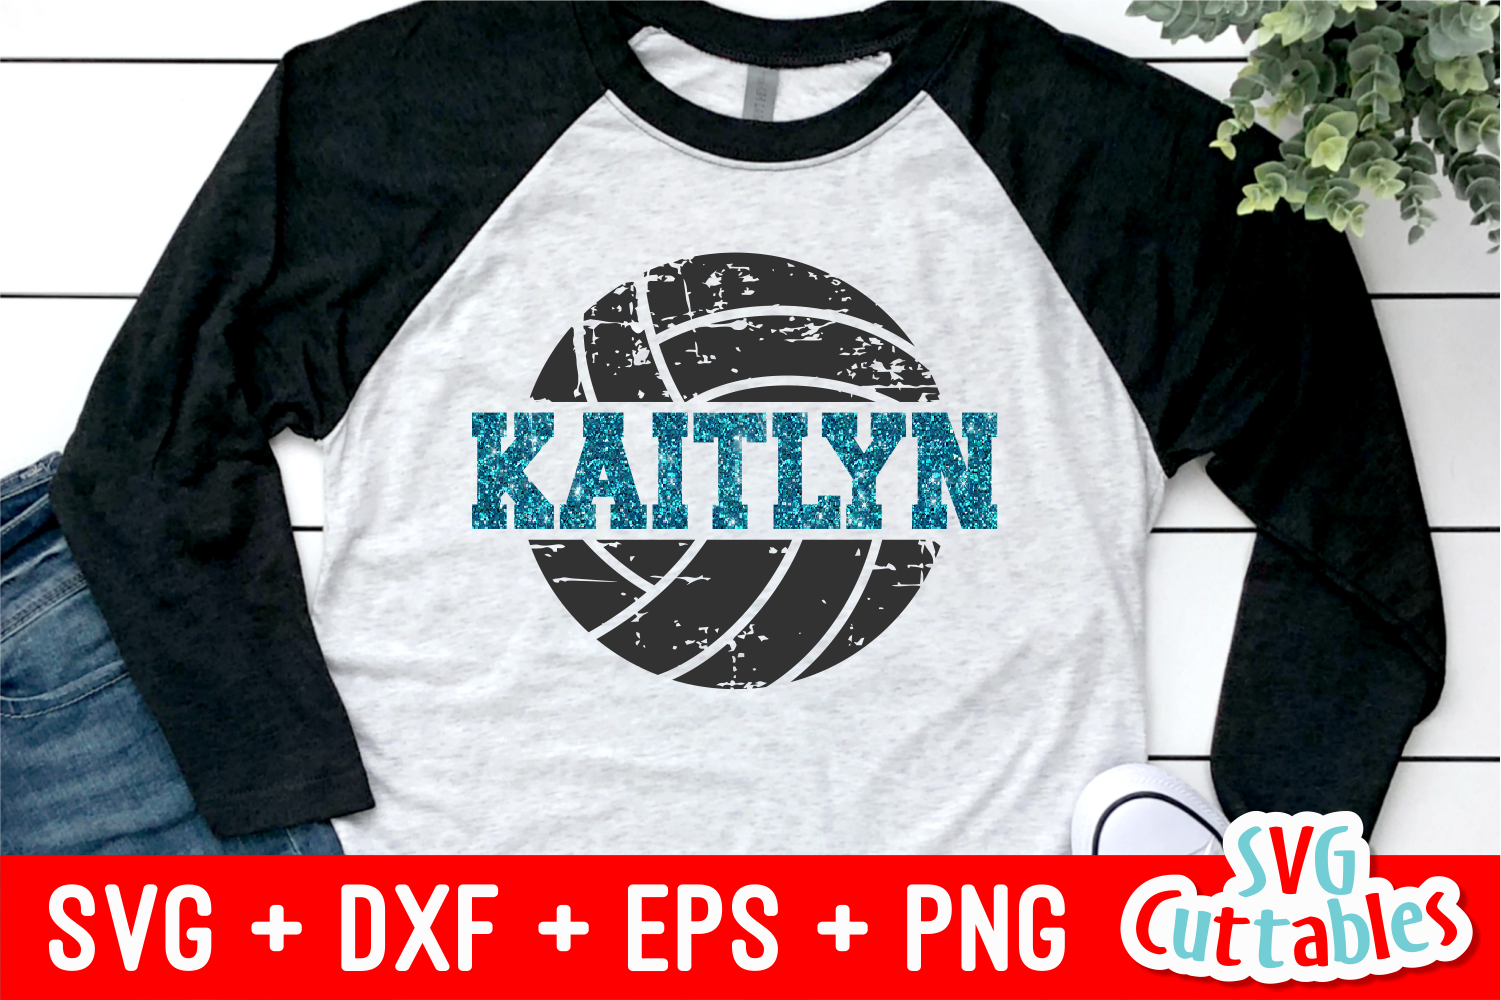 Distressed Split Volleyball | SVG Cut File example image 1